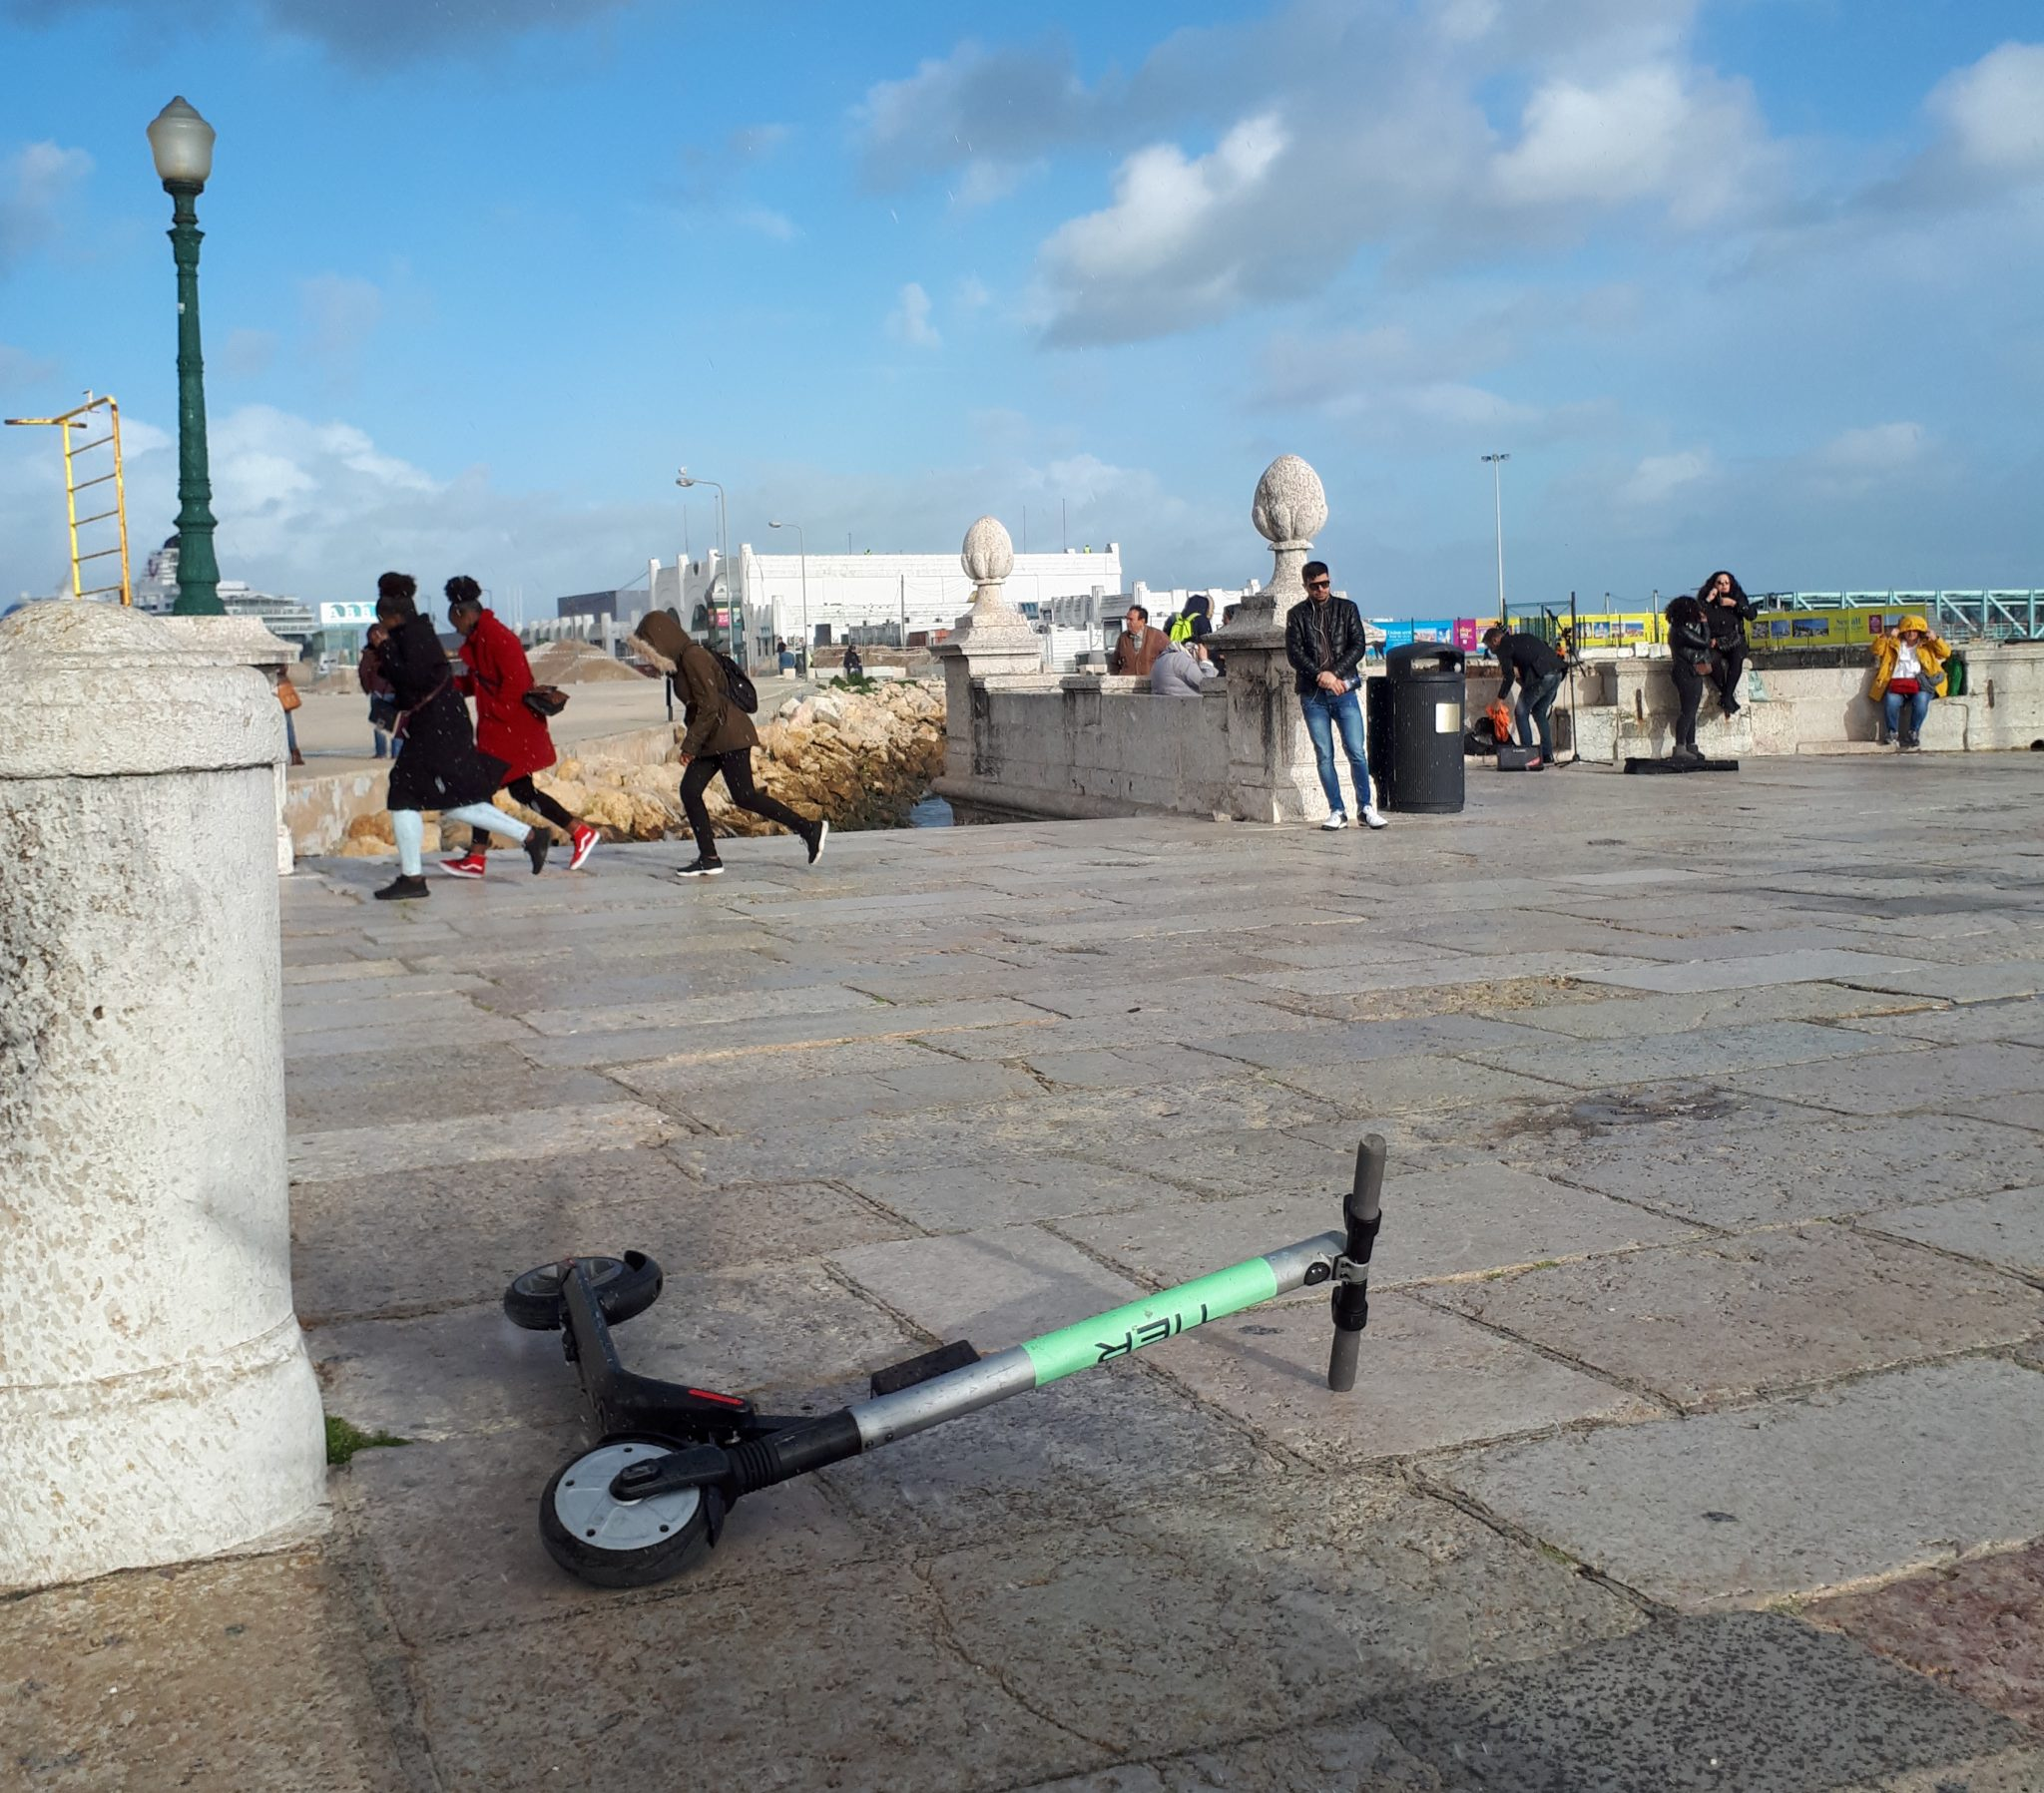 A Tier scooter in Lisbon.